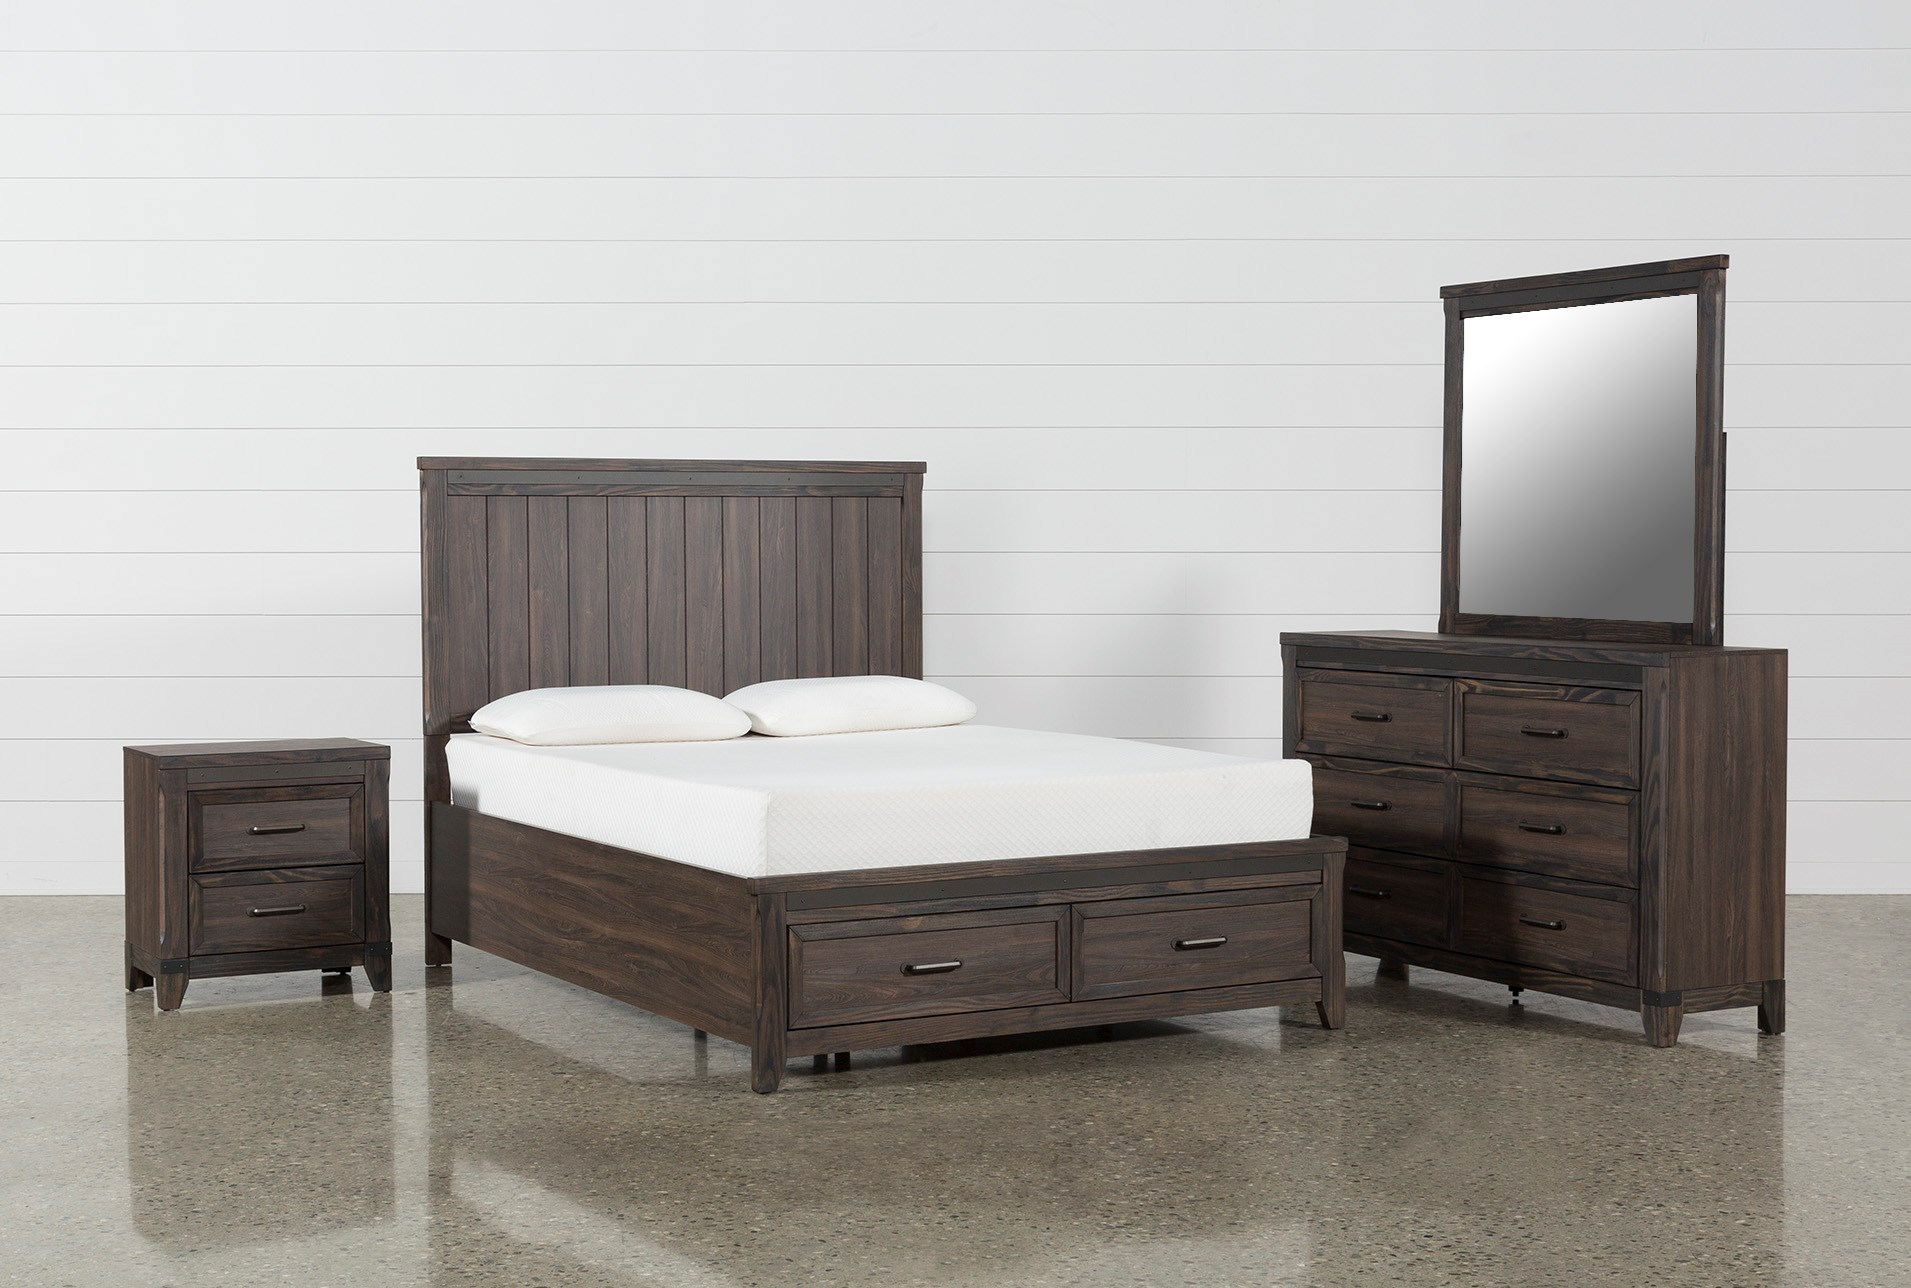 hendricks 4 piece queen bedroom set qty 1 has been successfully added to your cart - Queen Bedroom Frames